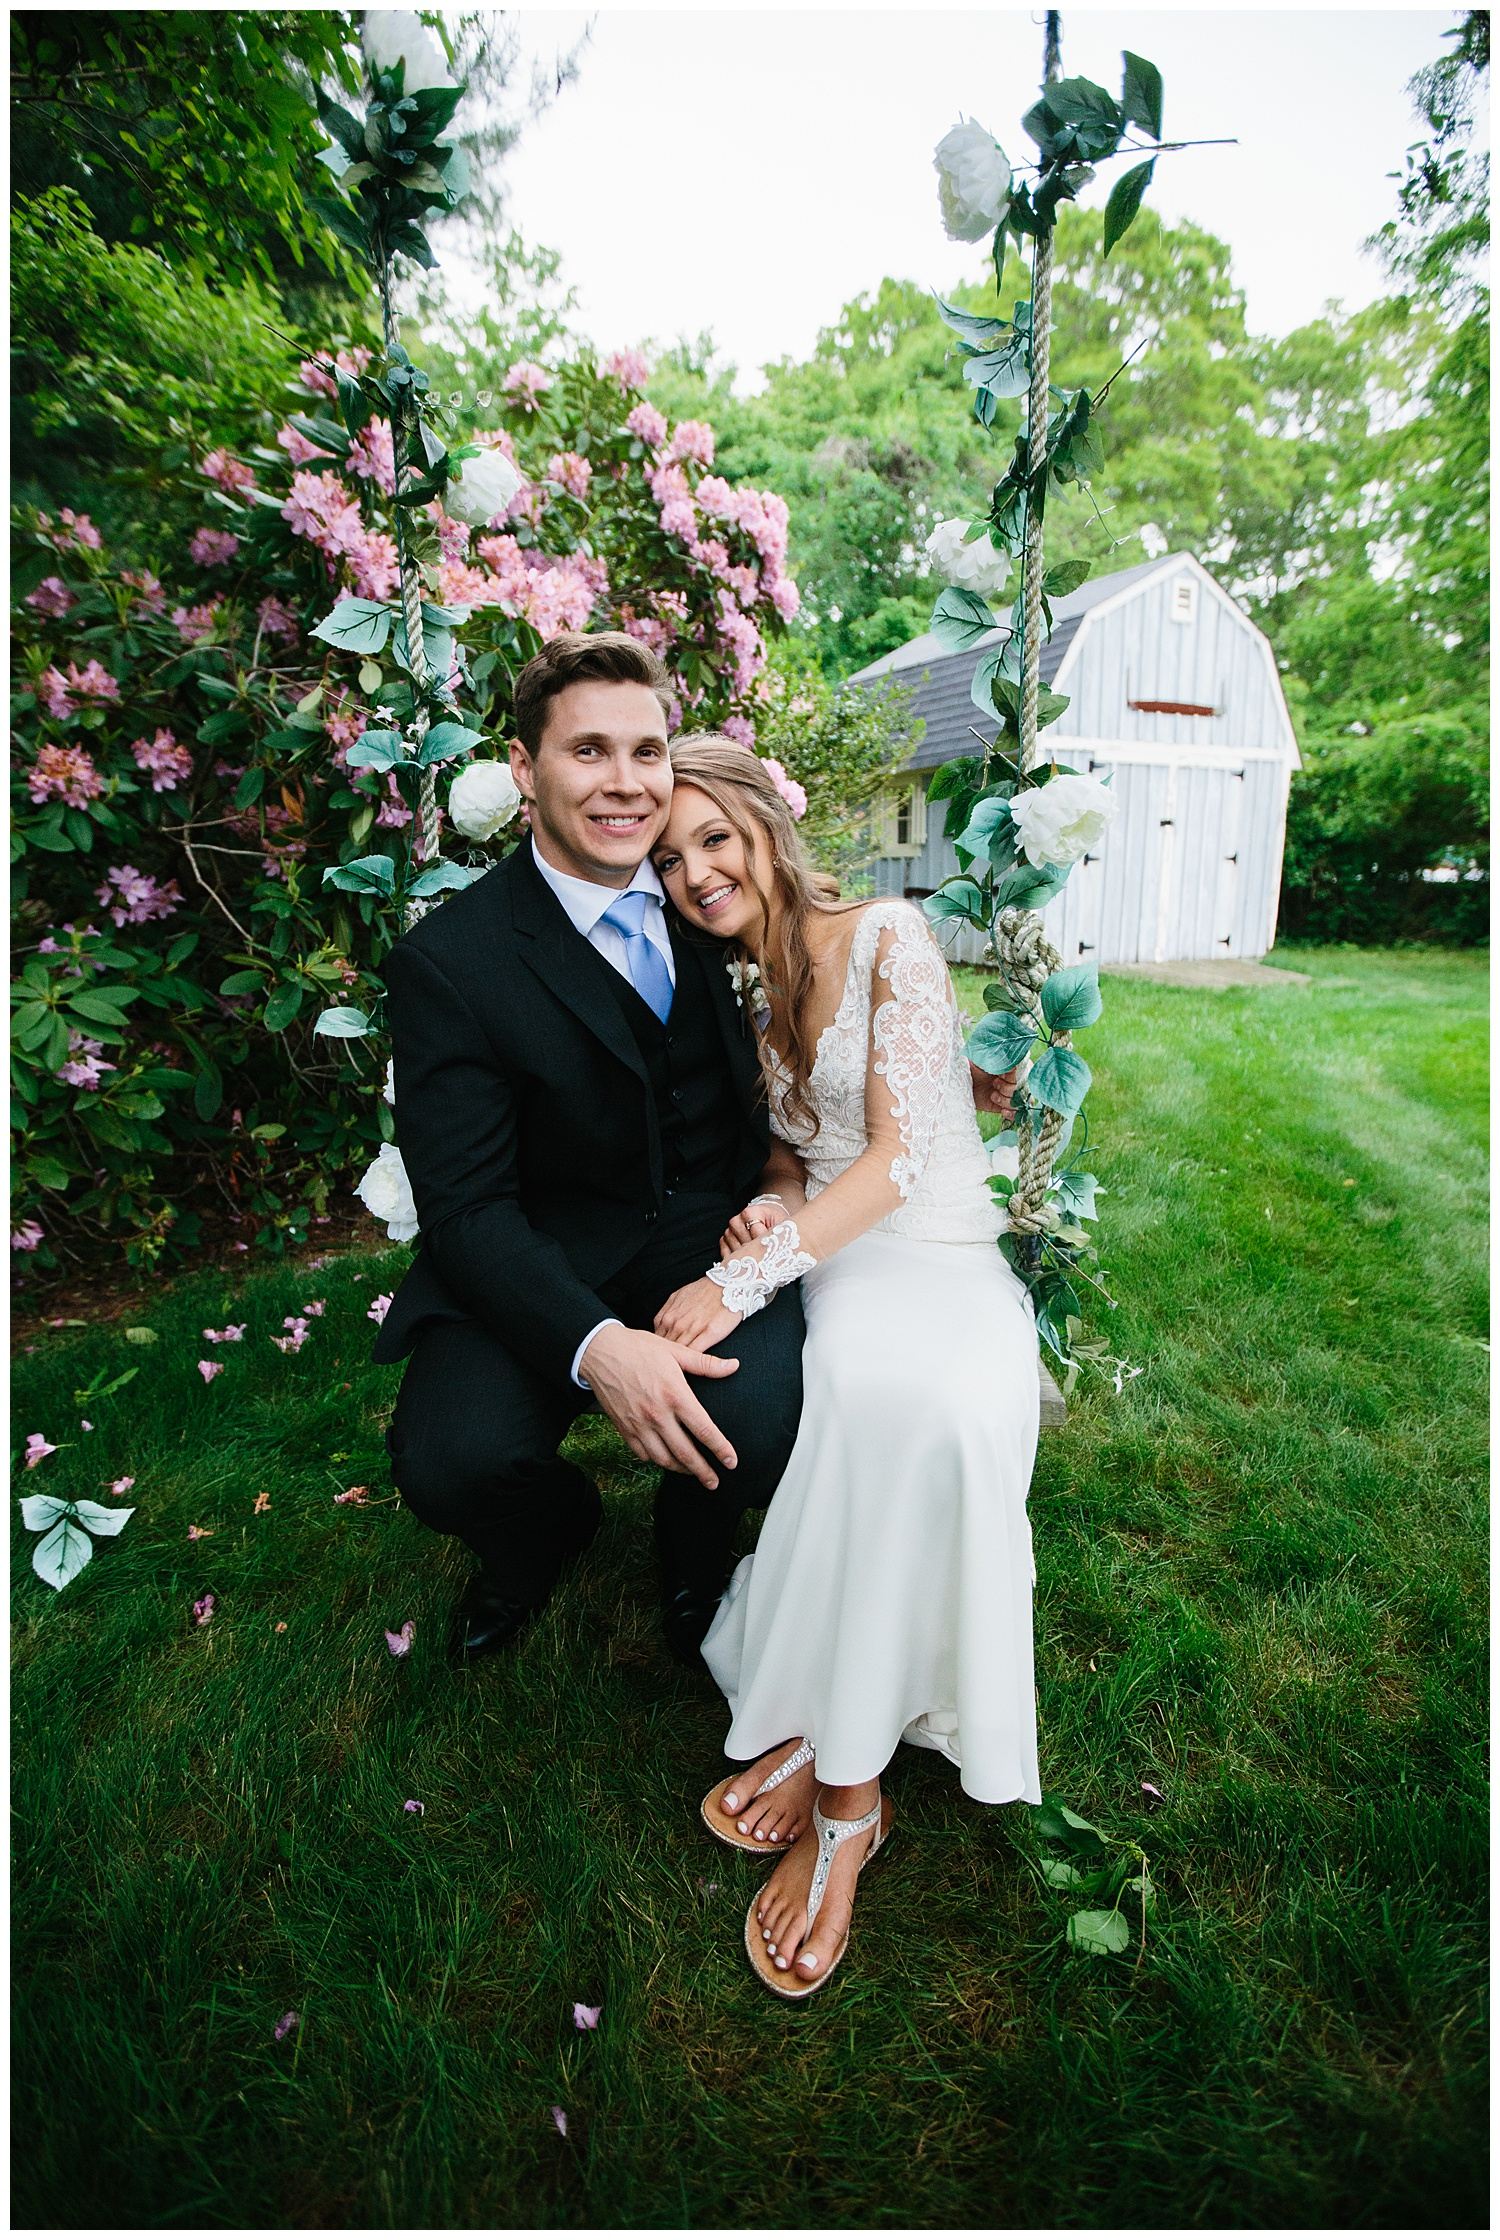 Tyler + Brynn + Botanical Gardens + Roger Williams + Rhode Island + Wedding_0116.jpg